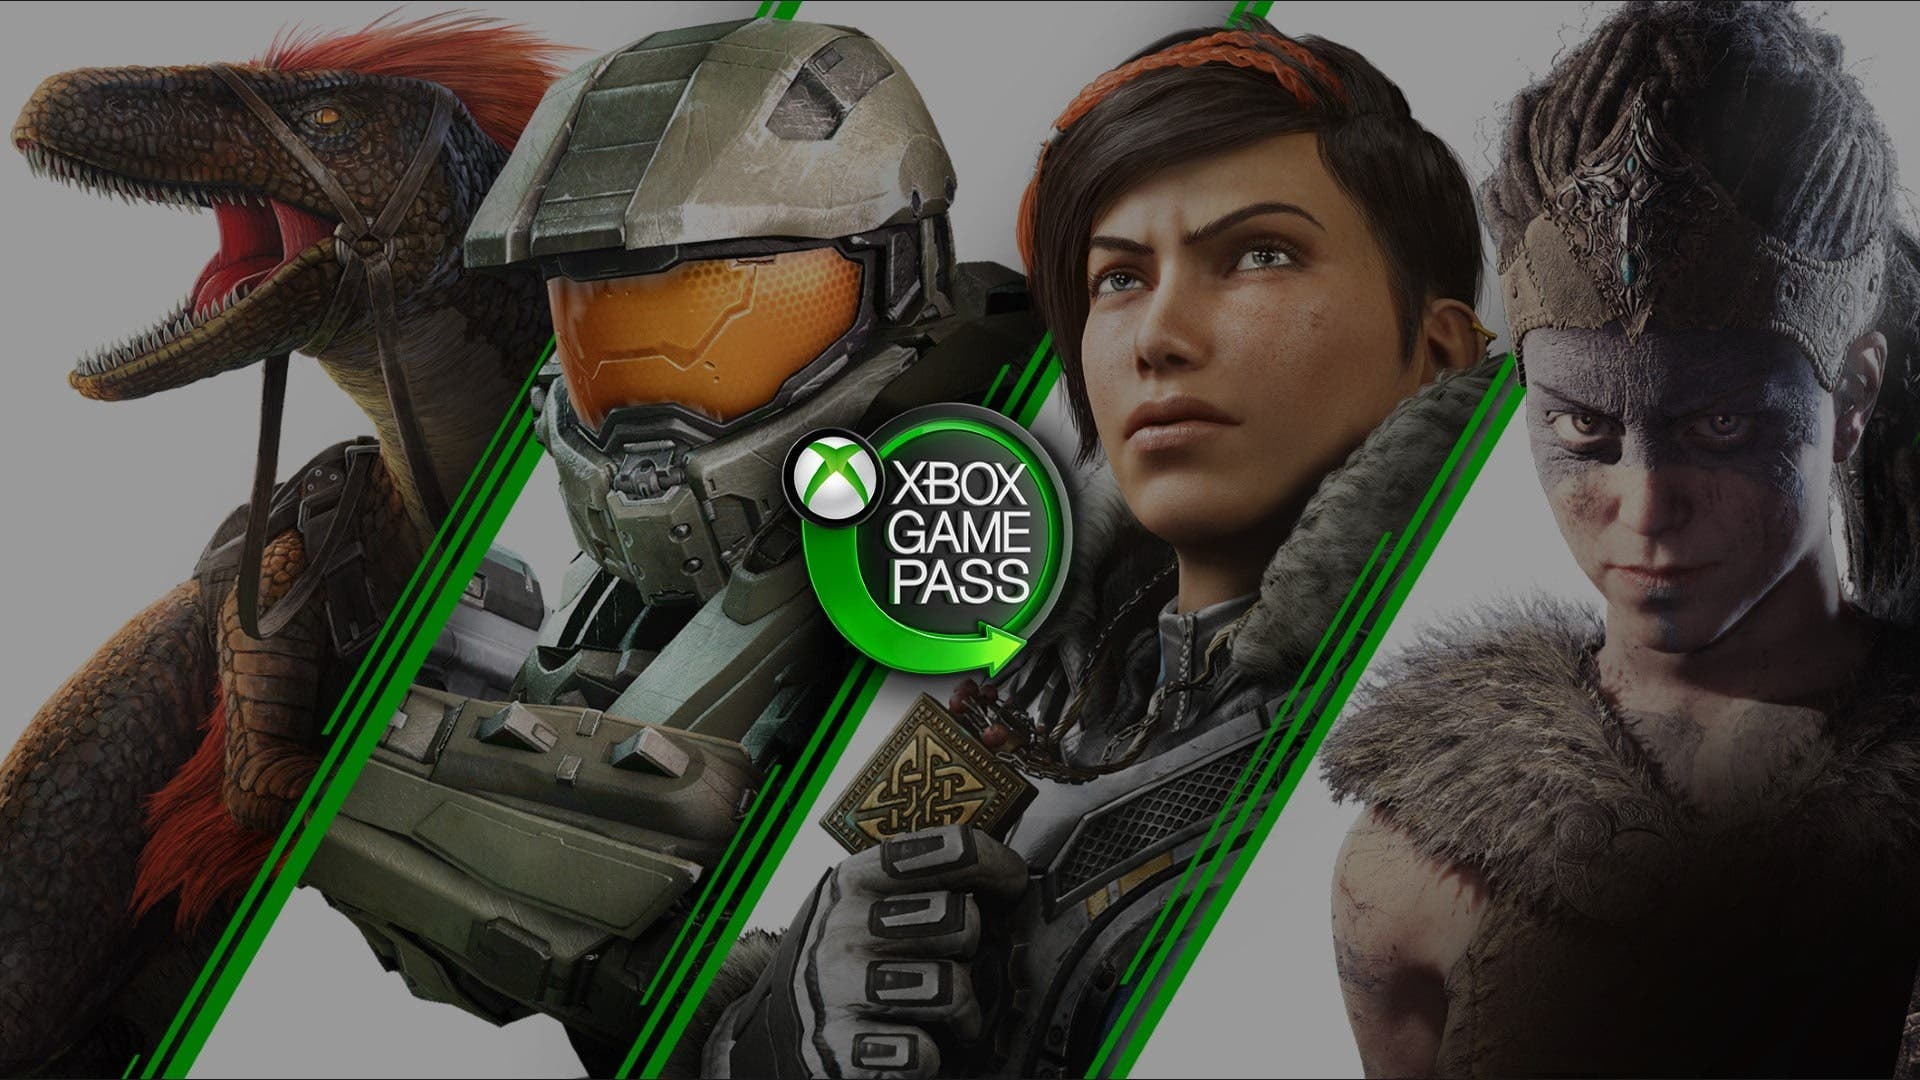 Xbox Game Pass is an amazing surprise for tomorrow